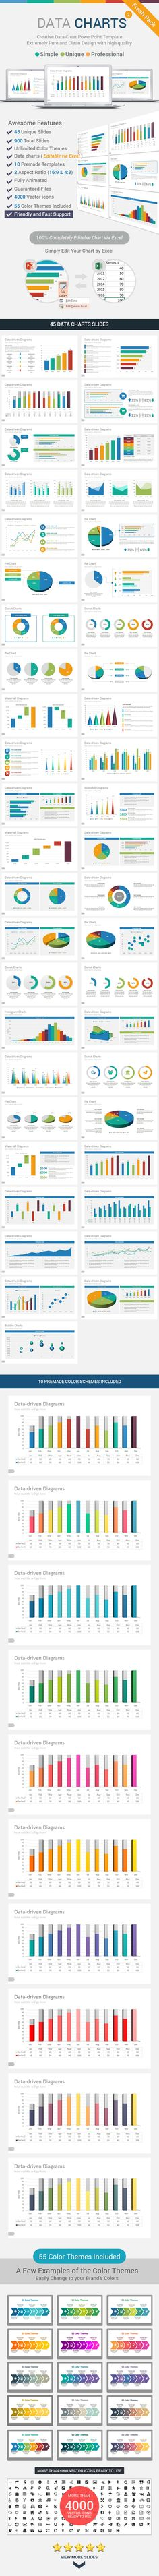 the 83 best dashboards reporting images on pinterest mortgage